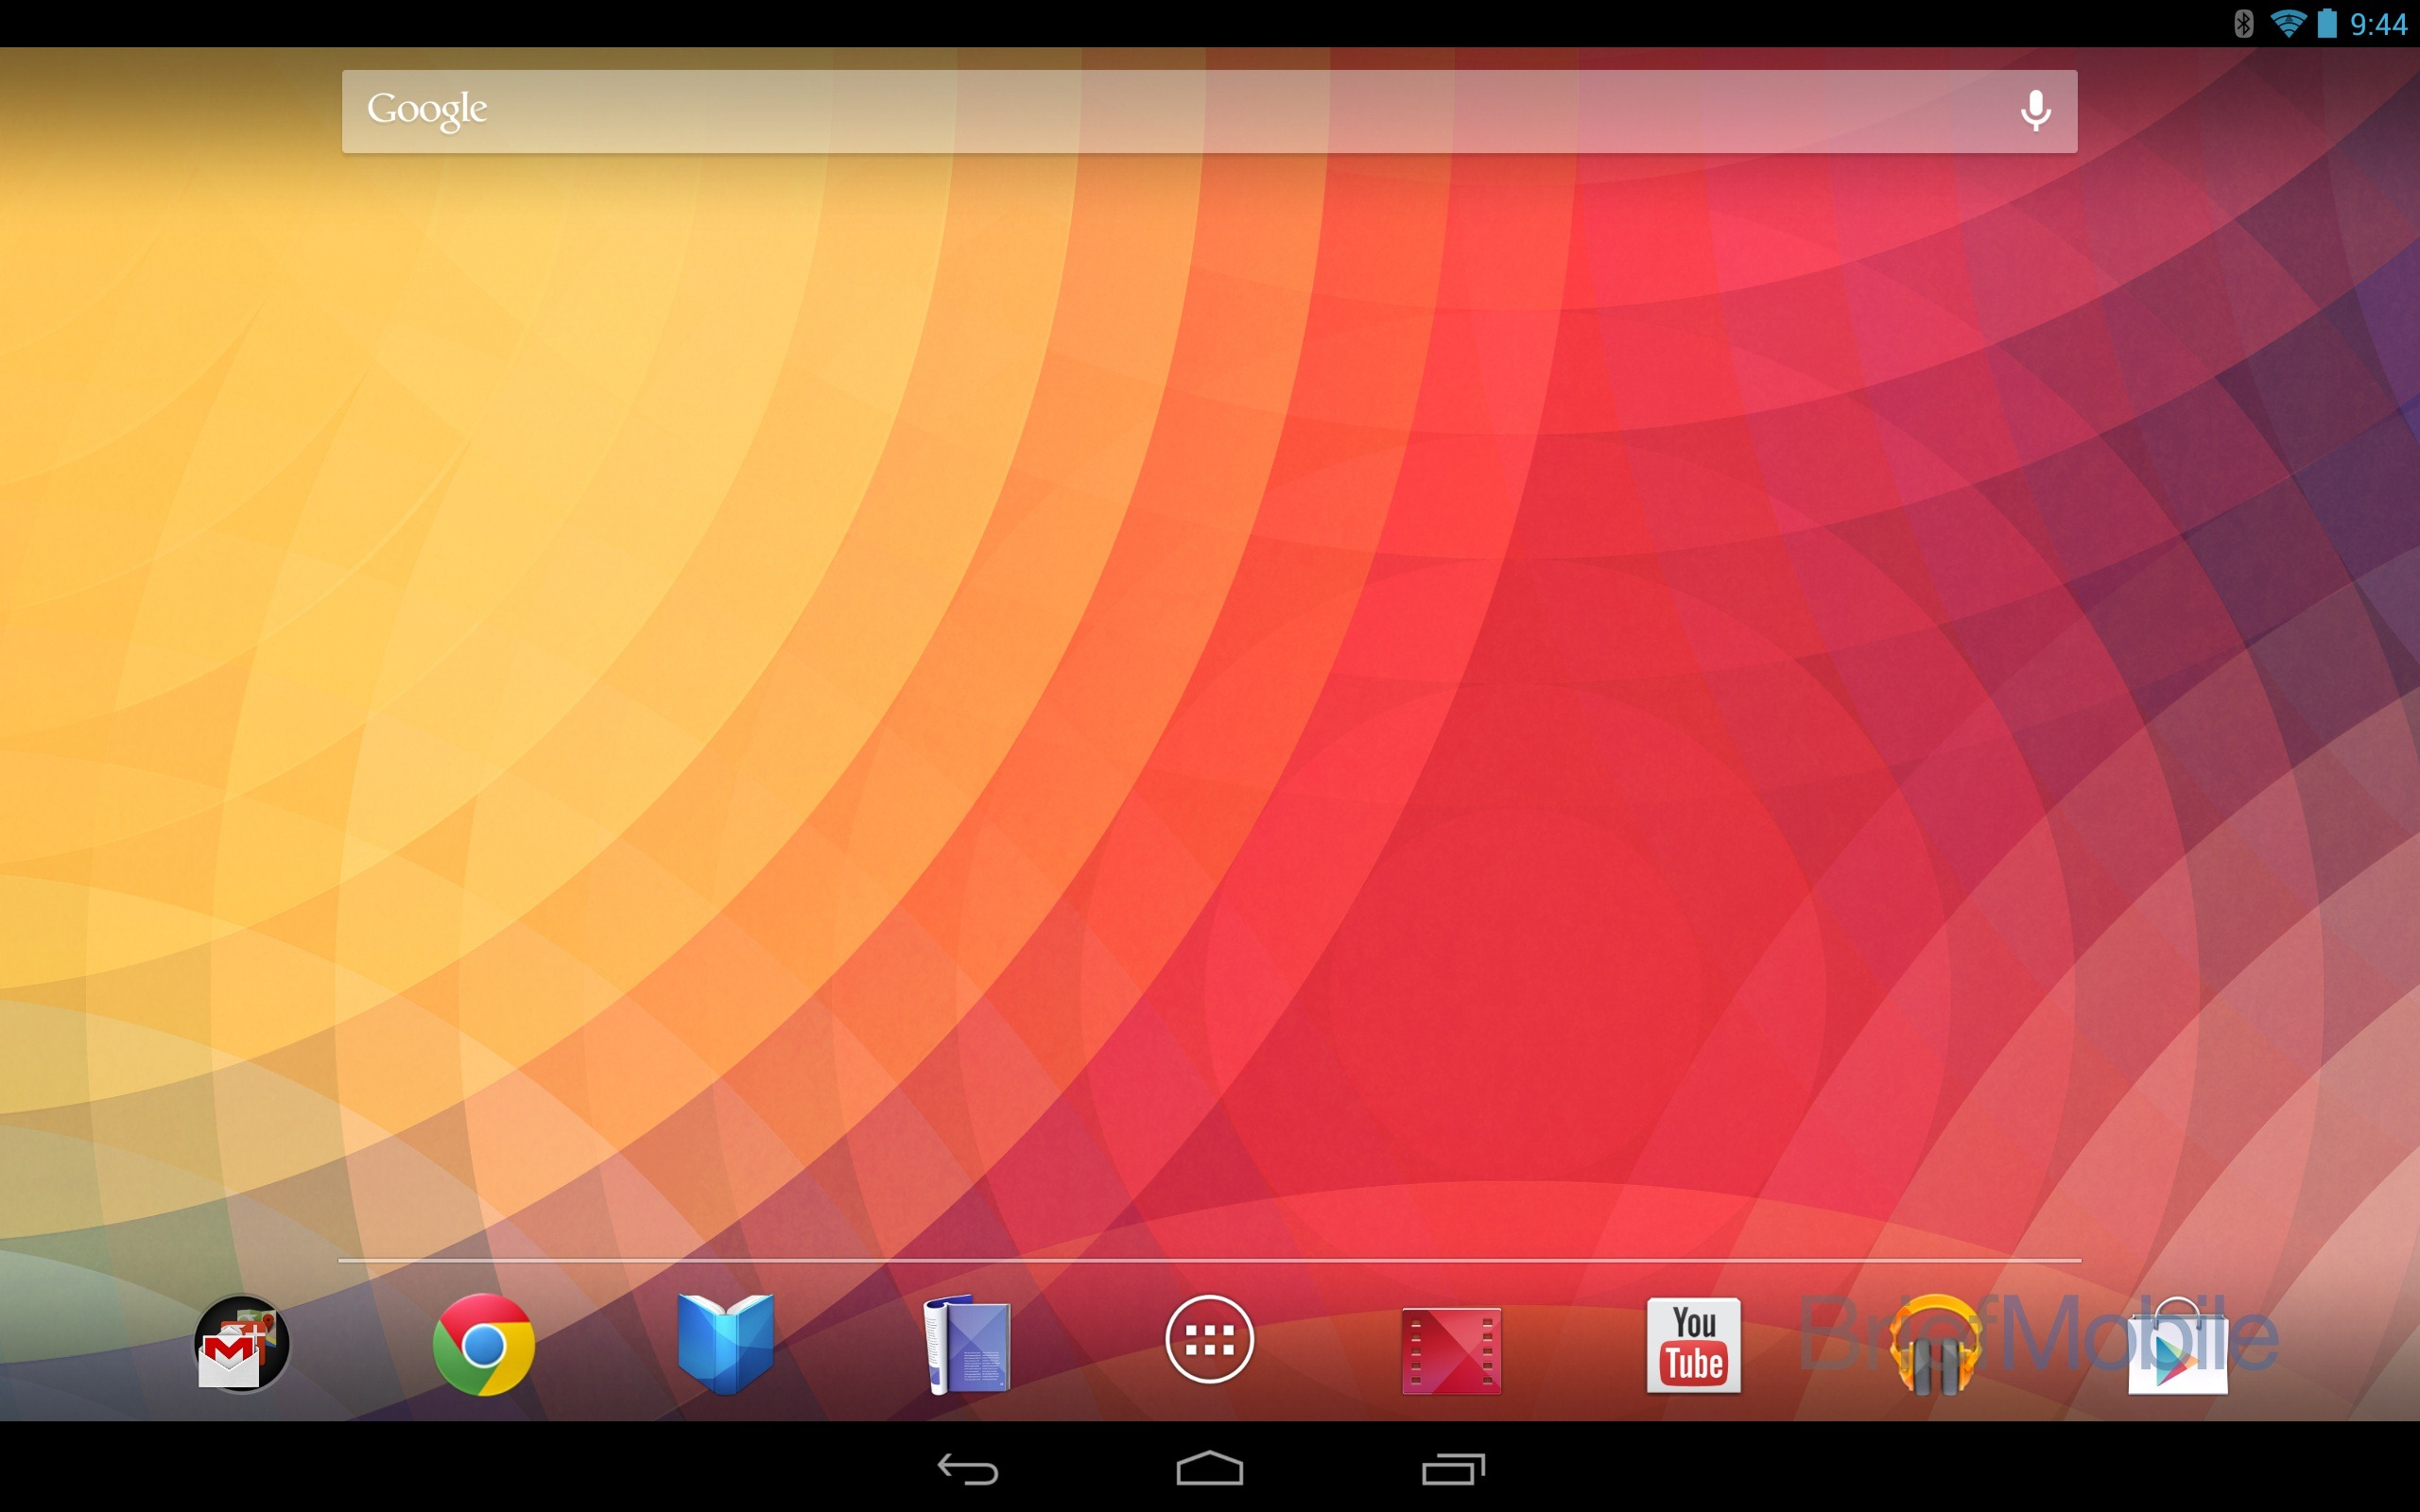 editorial: the android 4.2 tablet ui looks just like a giant